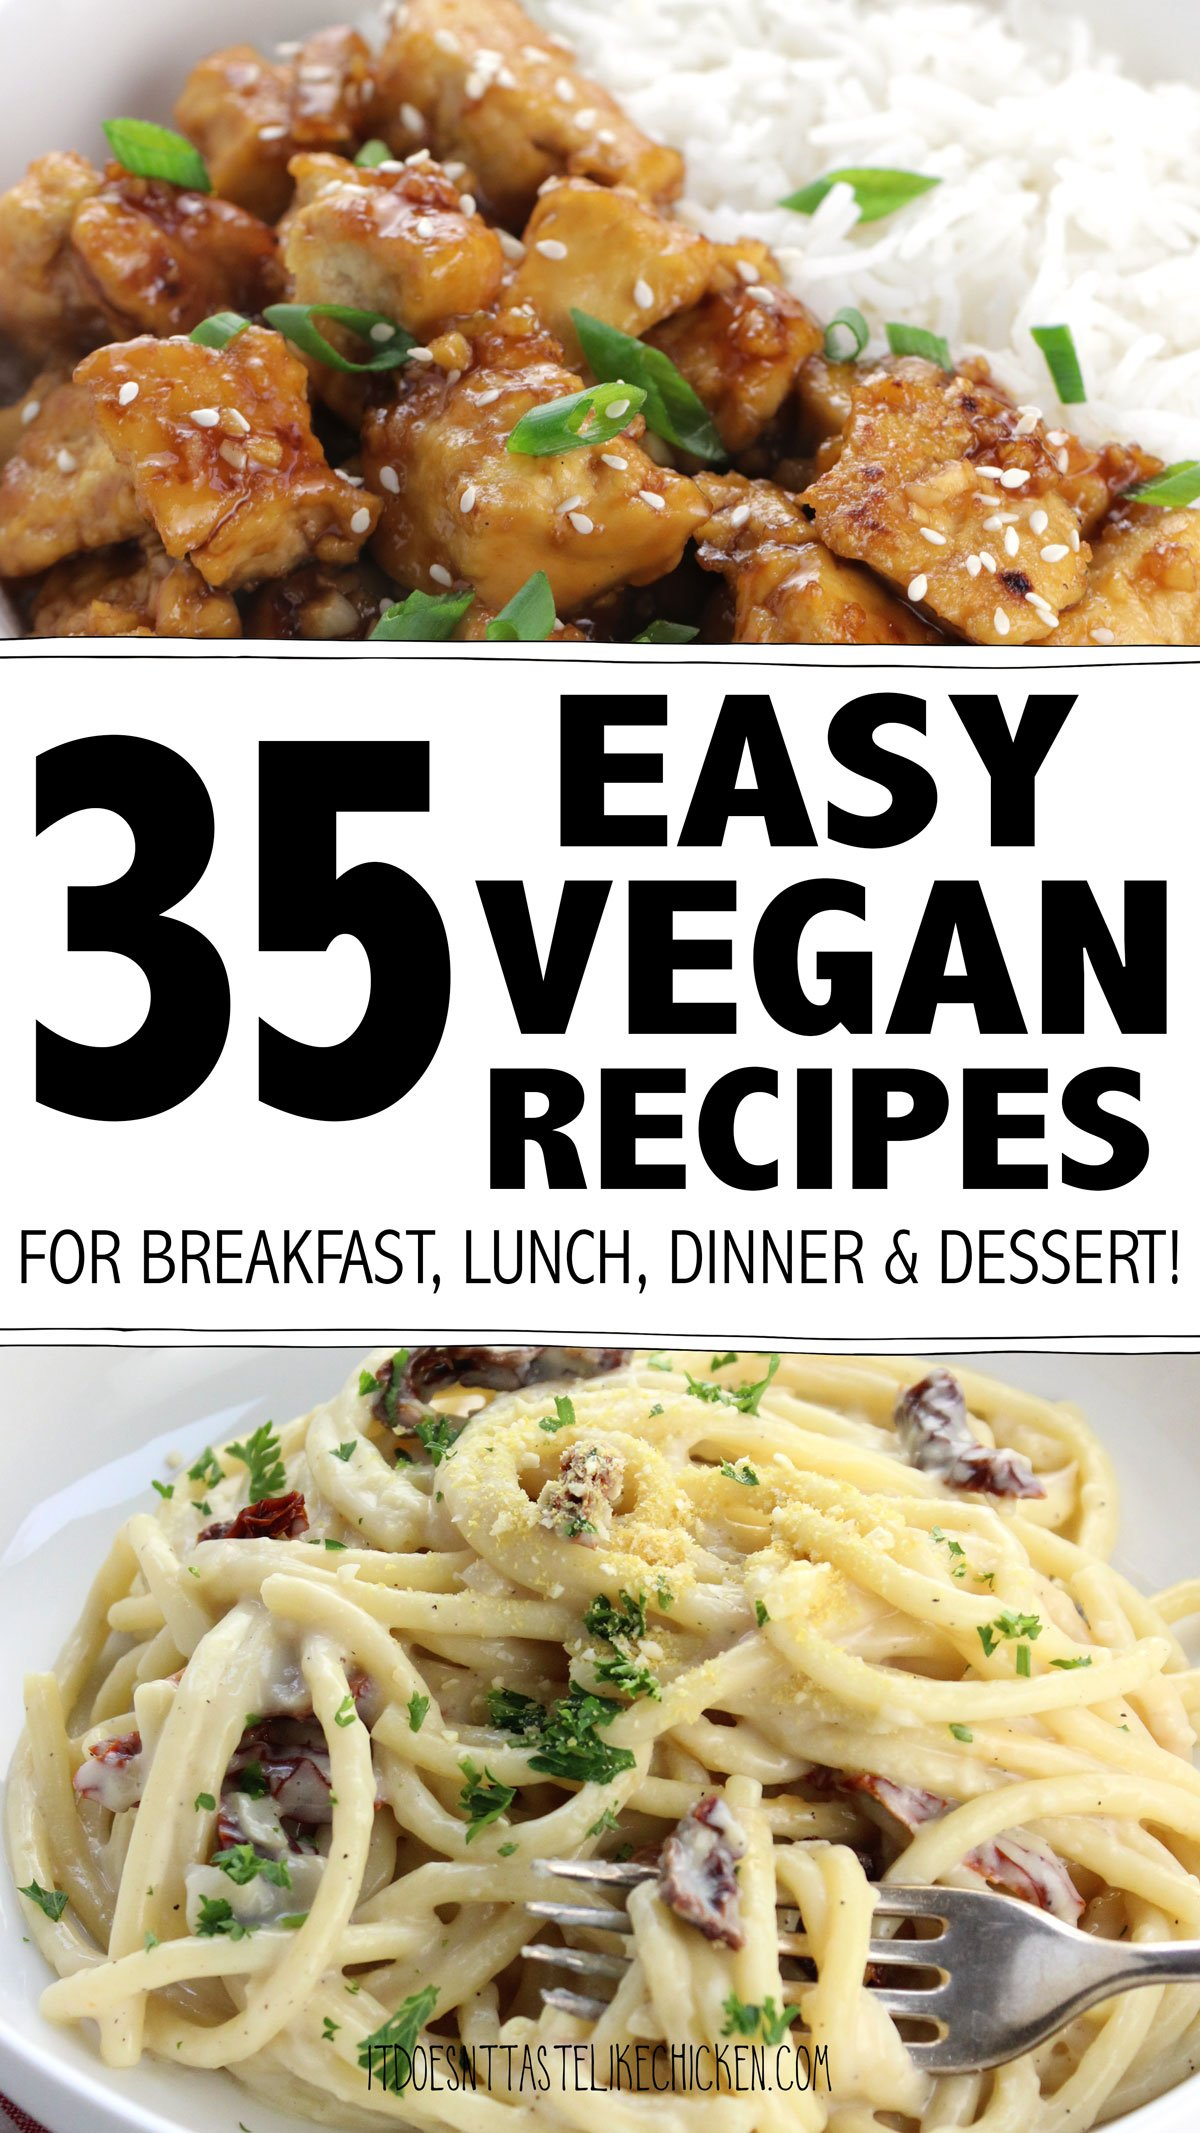 35 Easy Vegan Recipes for Every Meal! These are my go-to plant-based recipes for breakfast, lunch, dinner, and dessert. They are all so easy to make, super delicious, and super satisfying. #itdoesnttastelikechicken #veganrecipes